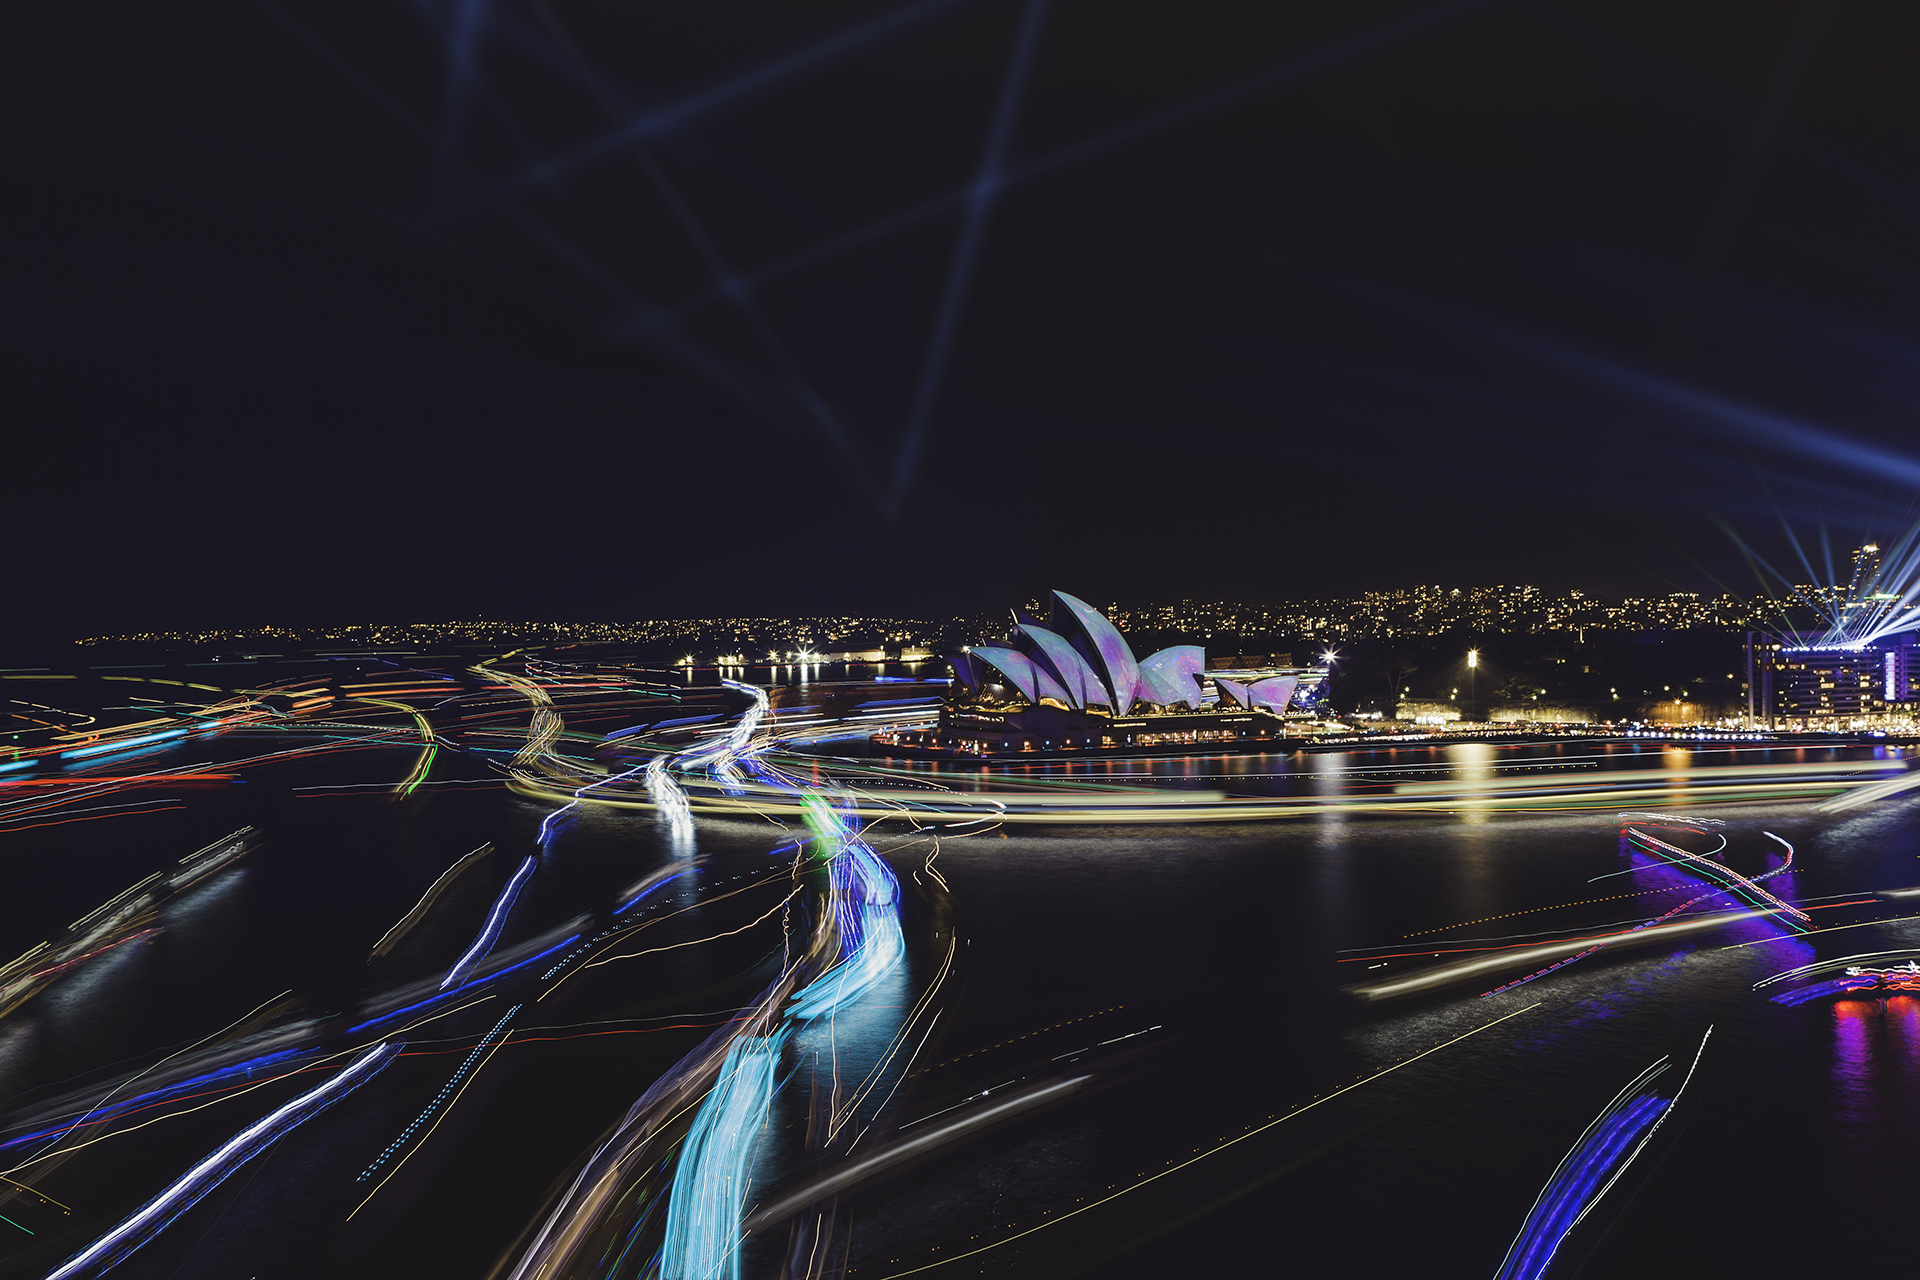 2019 Vivid Festival - Image by Maggie Hong